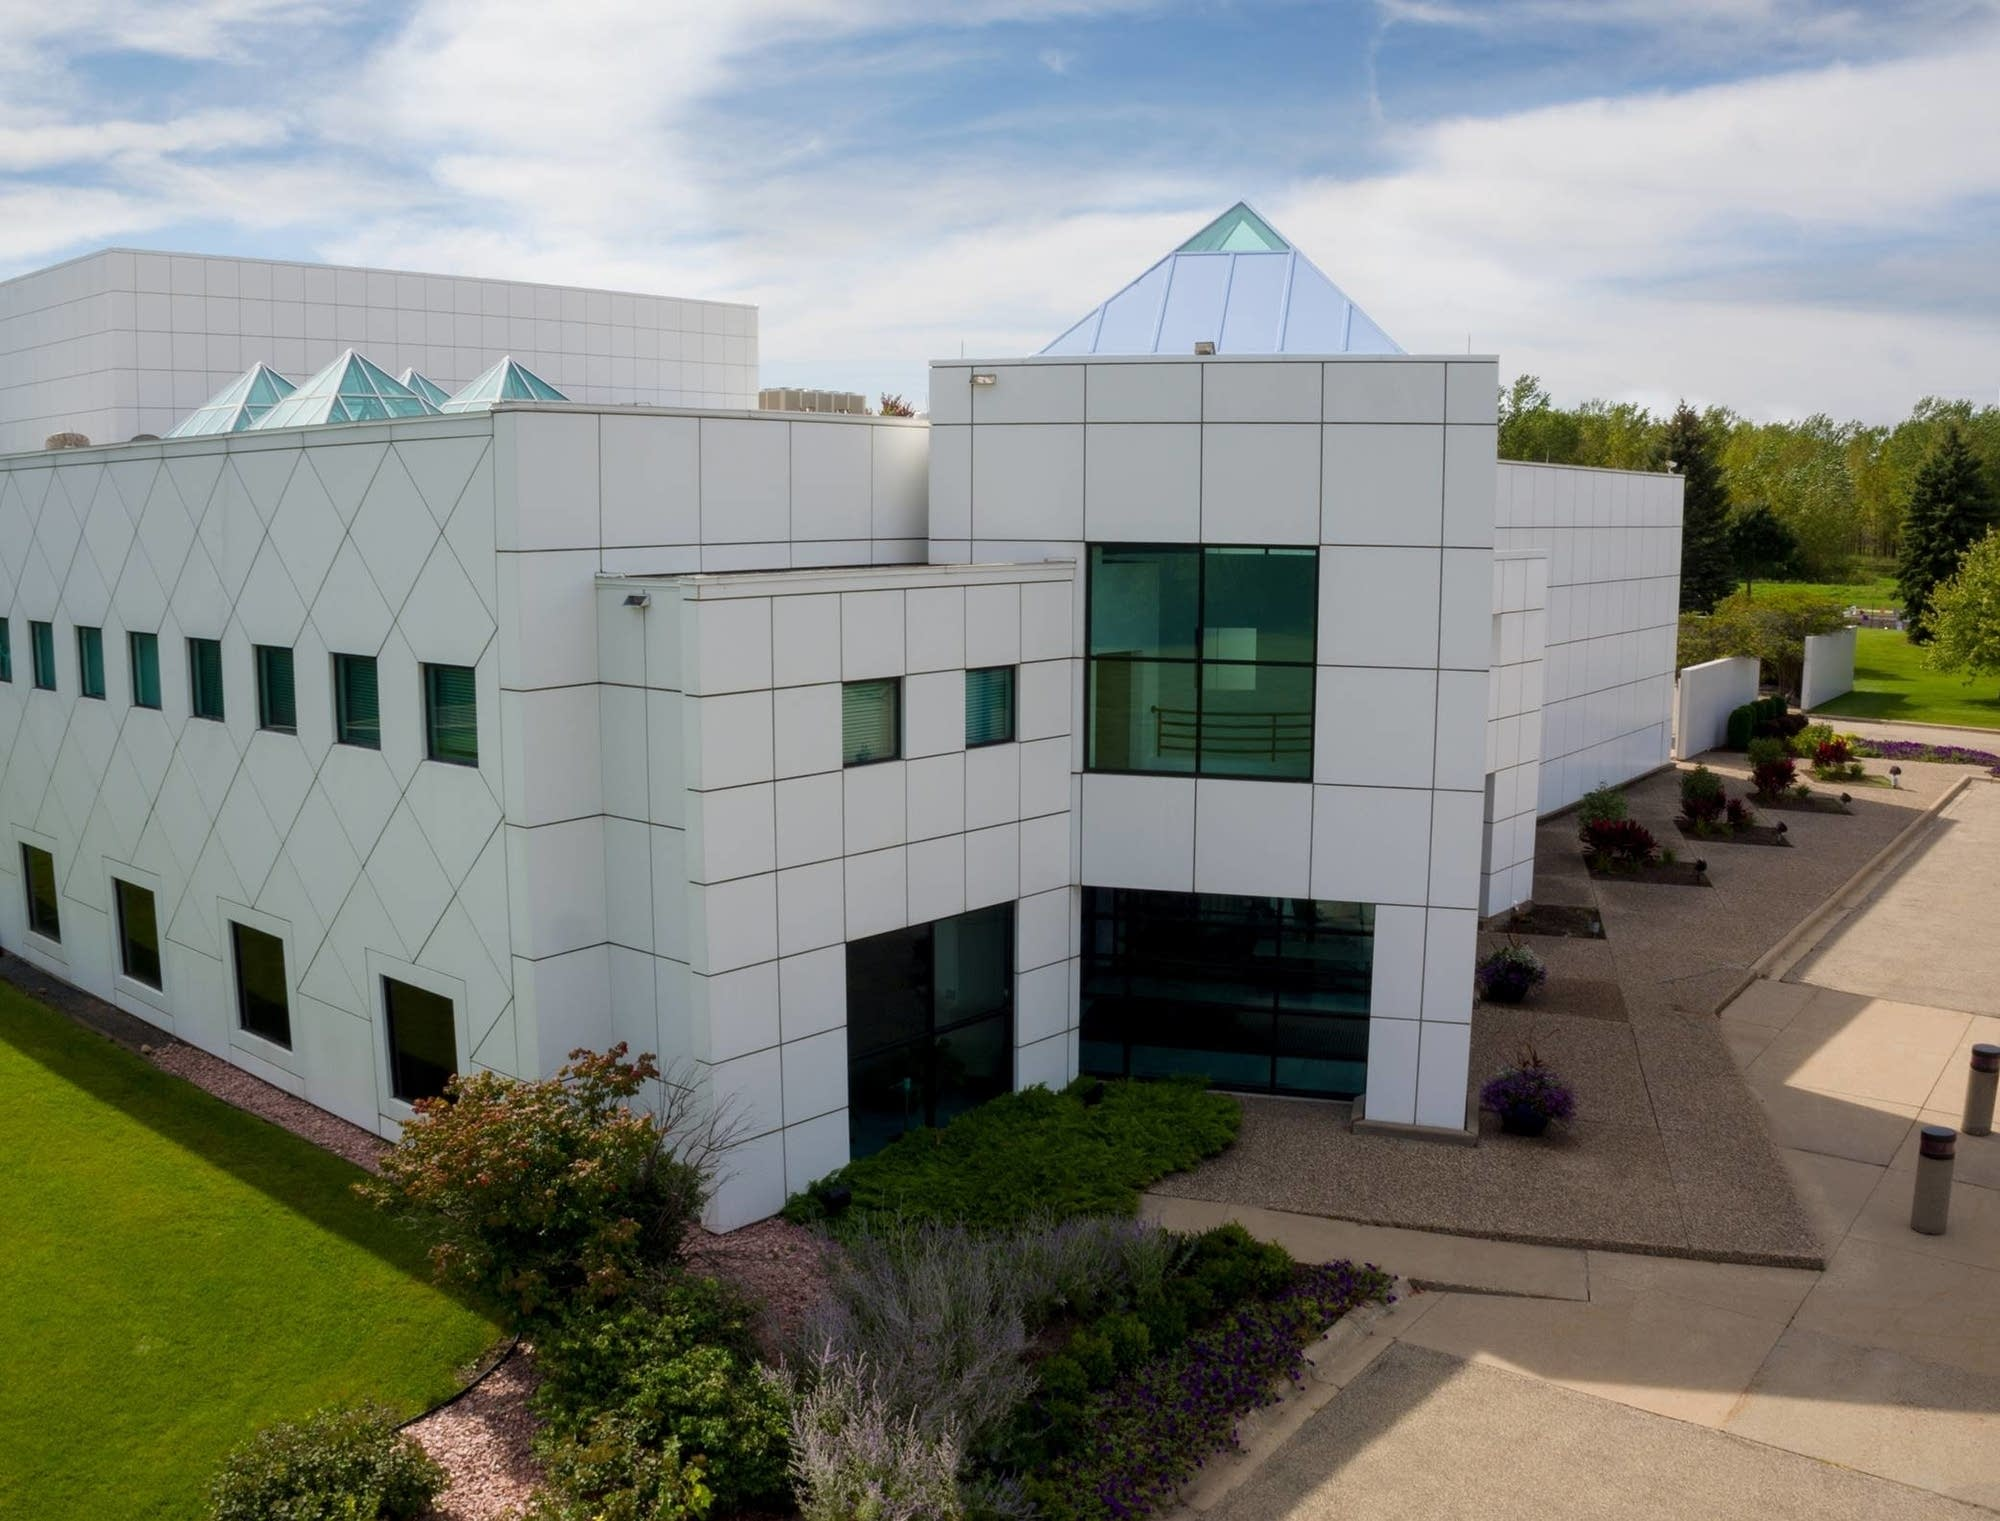 Paisley Park and Minneapolis Public Schools partner to make Prince's world accessible to students